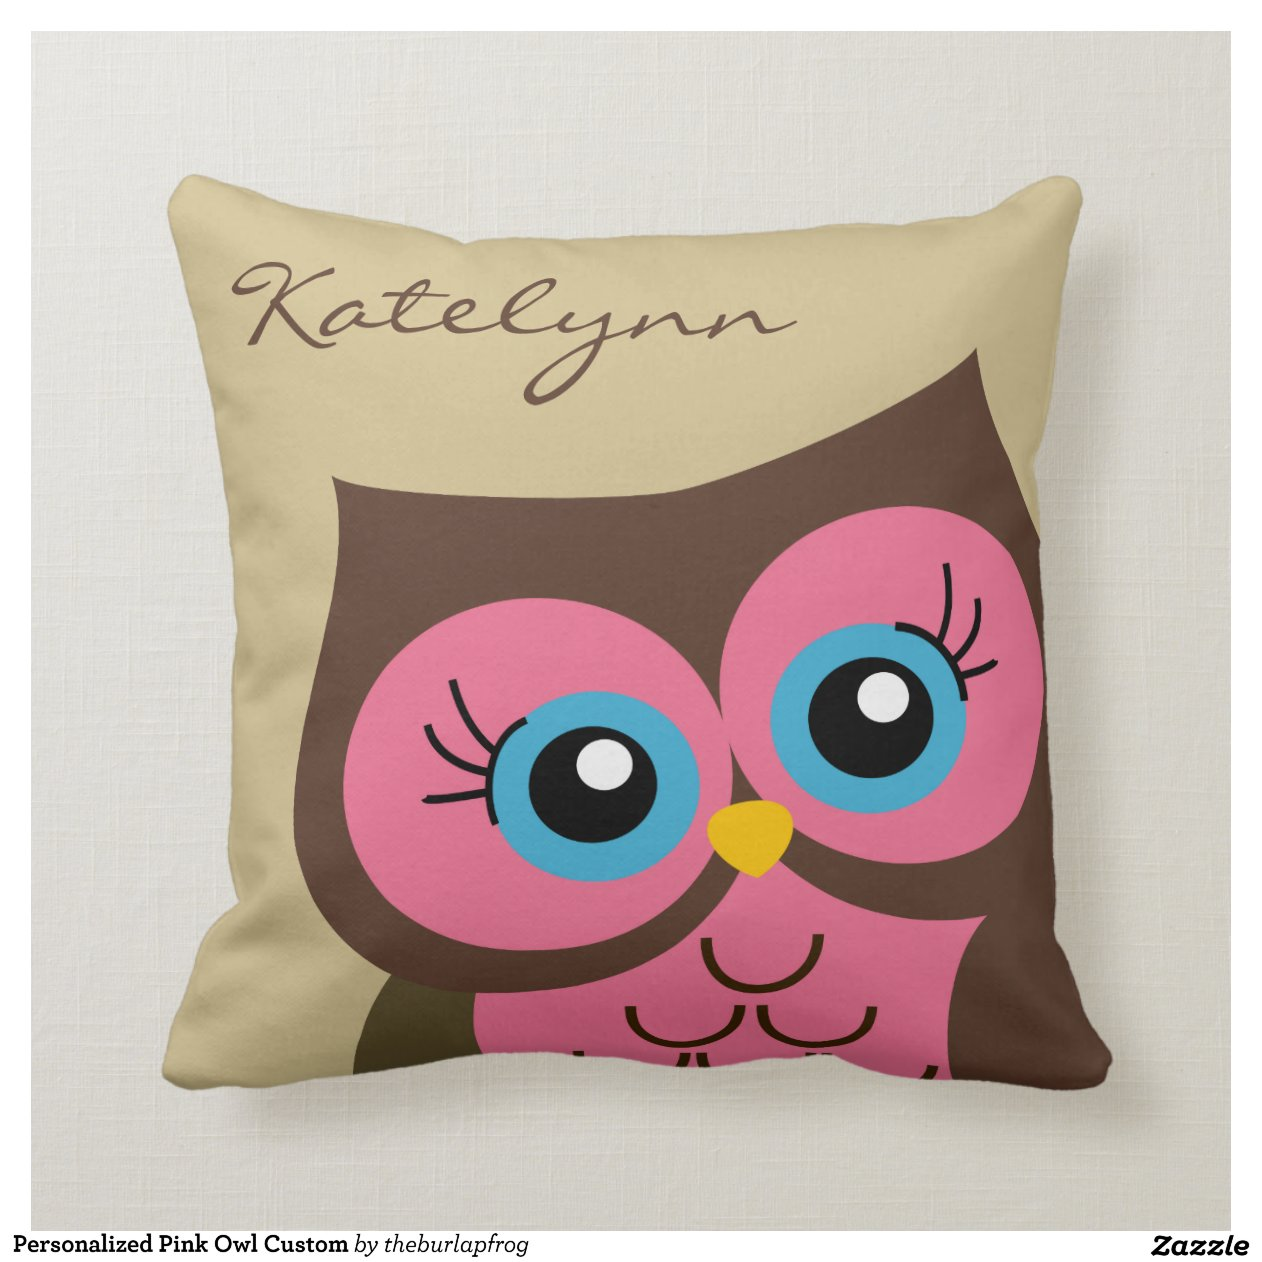 personalized_pink_owl_custom_throw_pillow